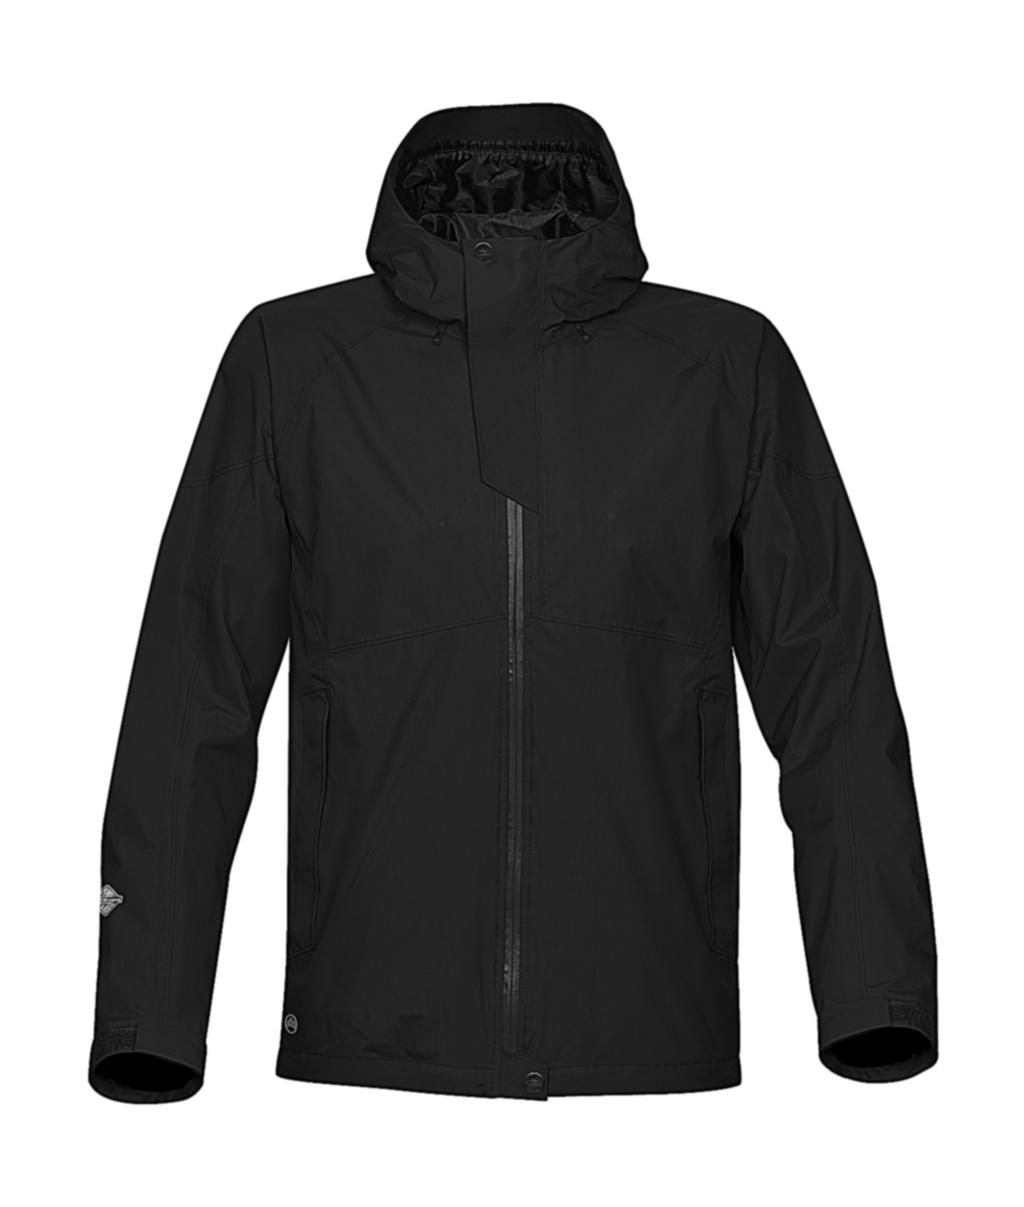 Lightning Shell Waterproof Jacket